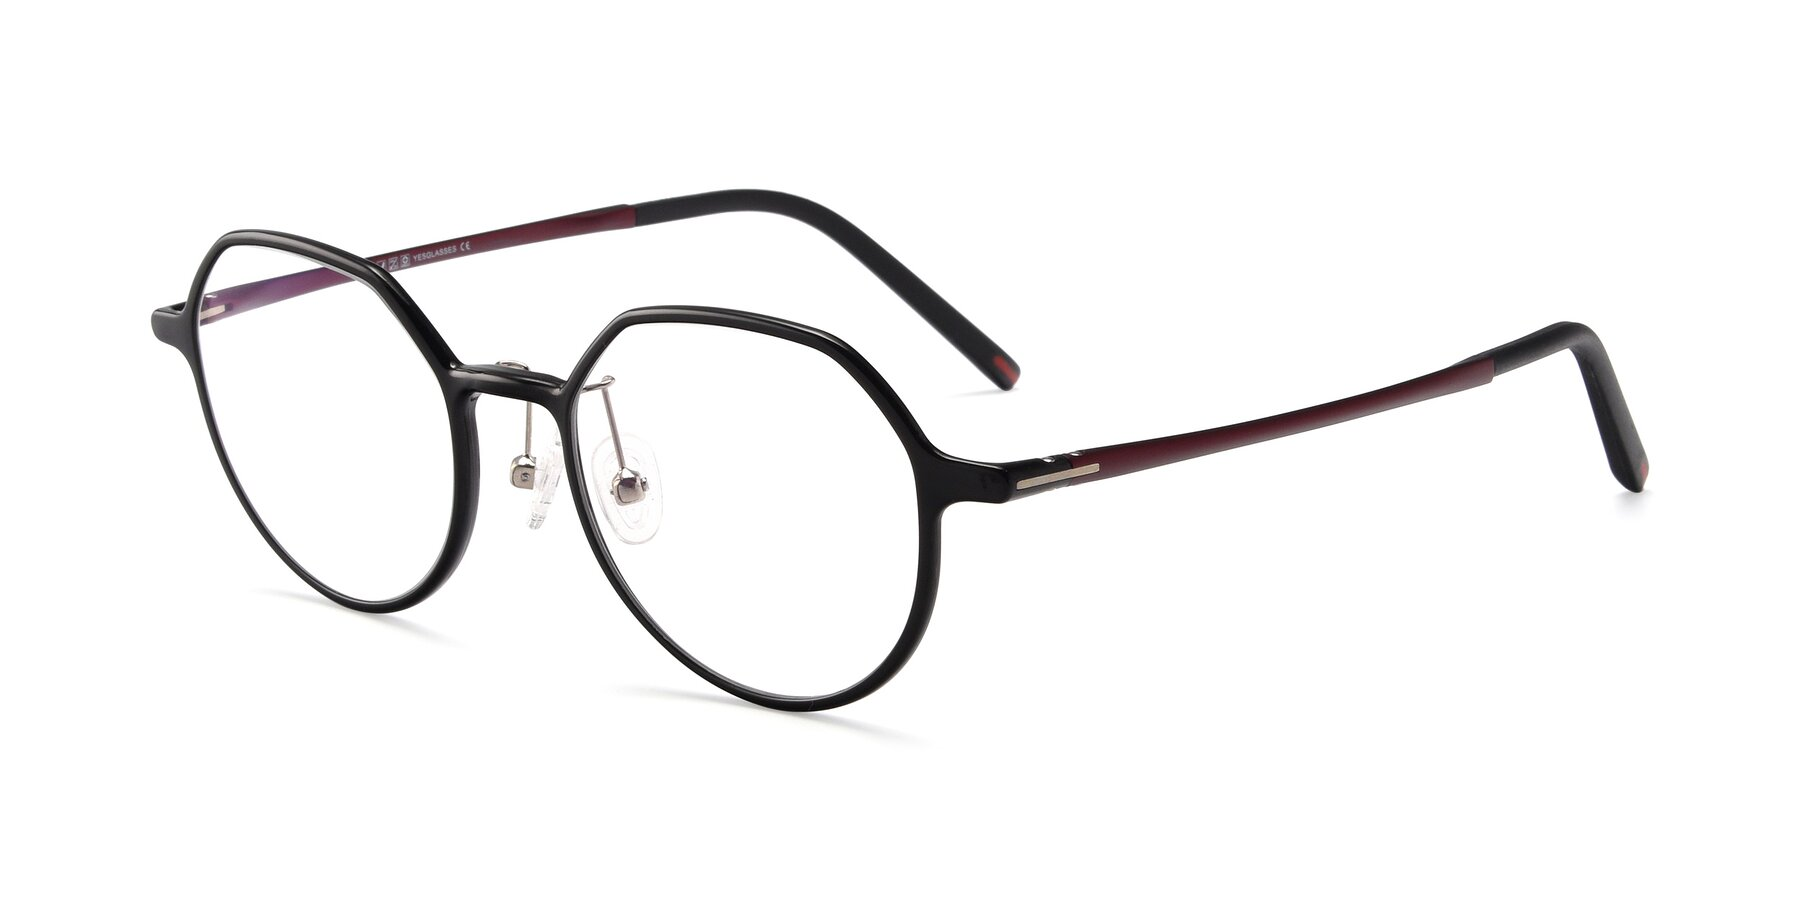 Angle of IP7033 in Black with Clear Eyeglass Lenses